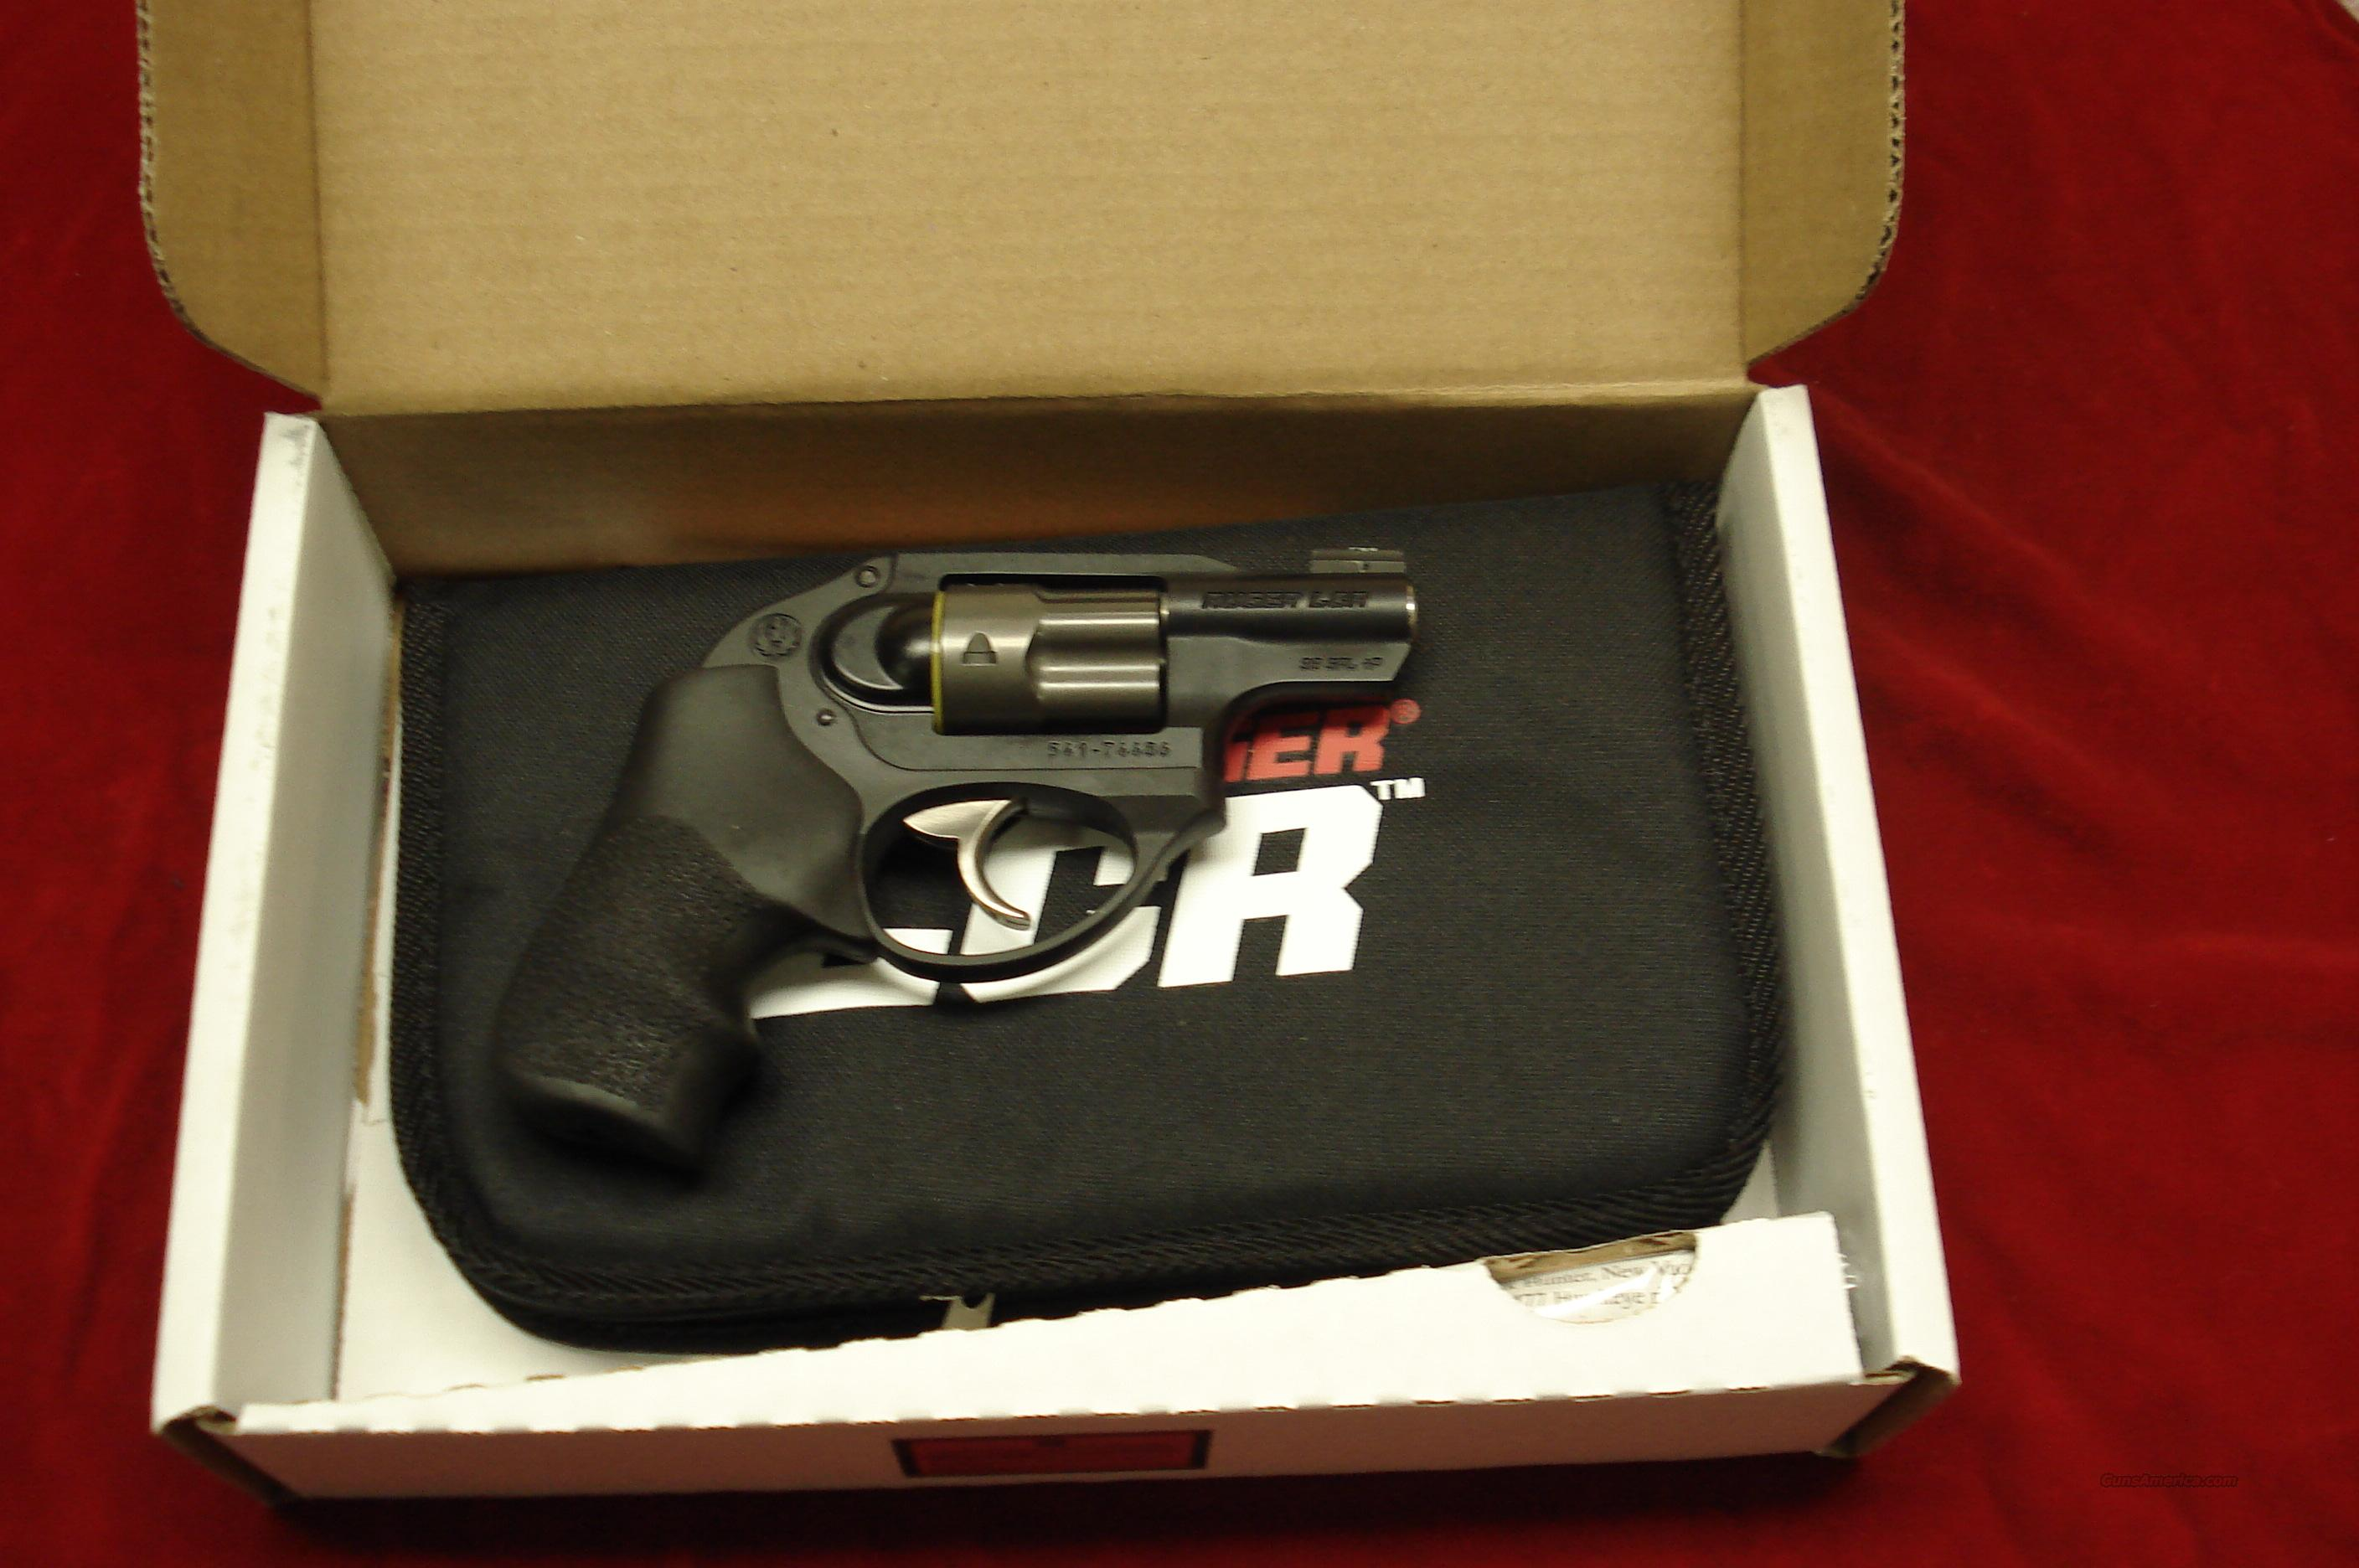 RUGER LCR 38SPL.+P WITH XS 24/7 TRIJICON NIGHT SIGHT NEW (LCR-XS)  Guns > Pistols > Ruger Double Action Revolver > LCR